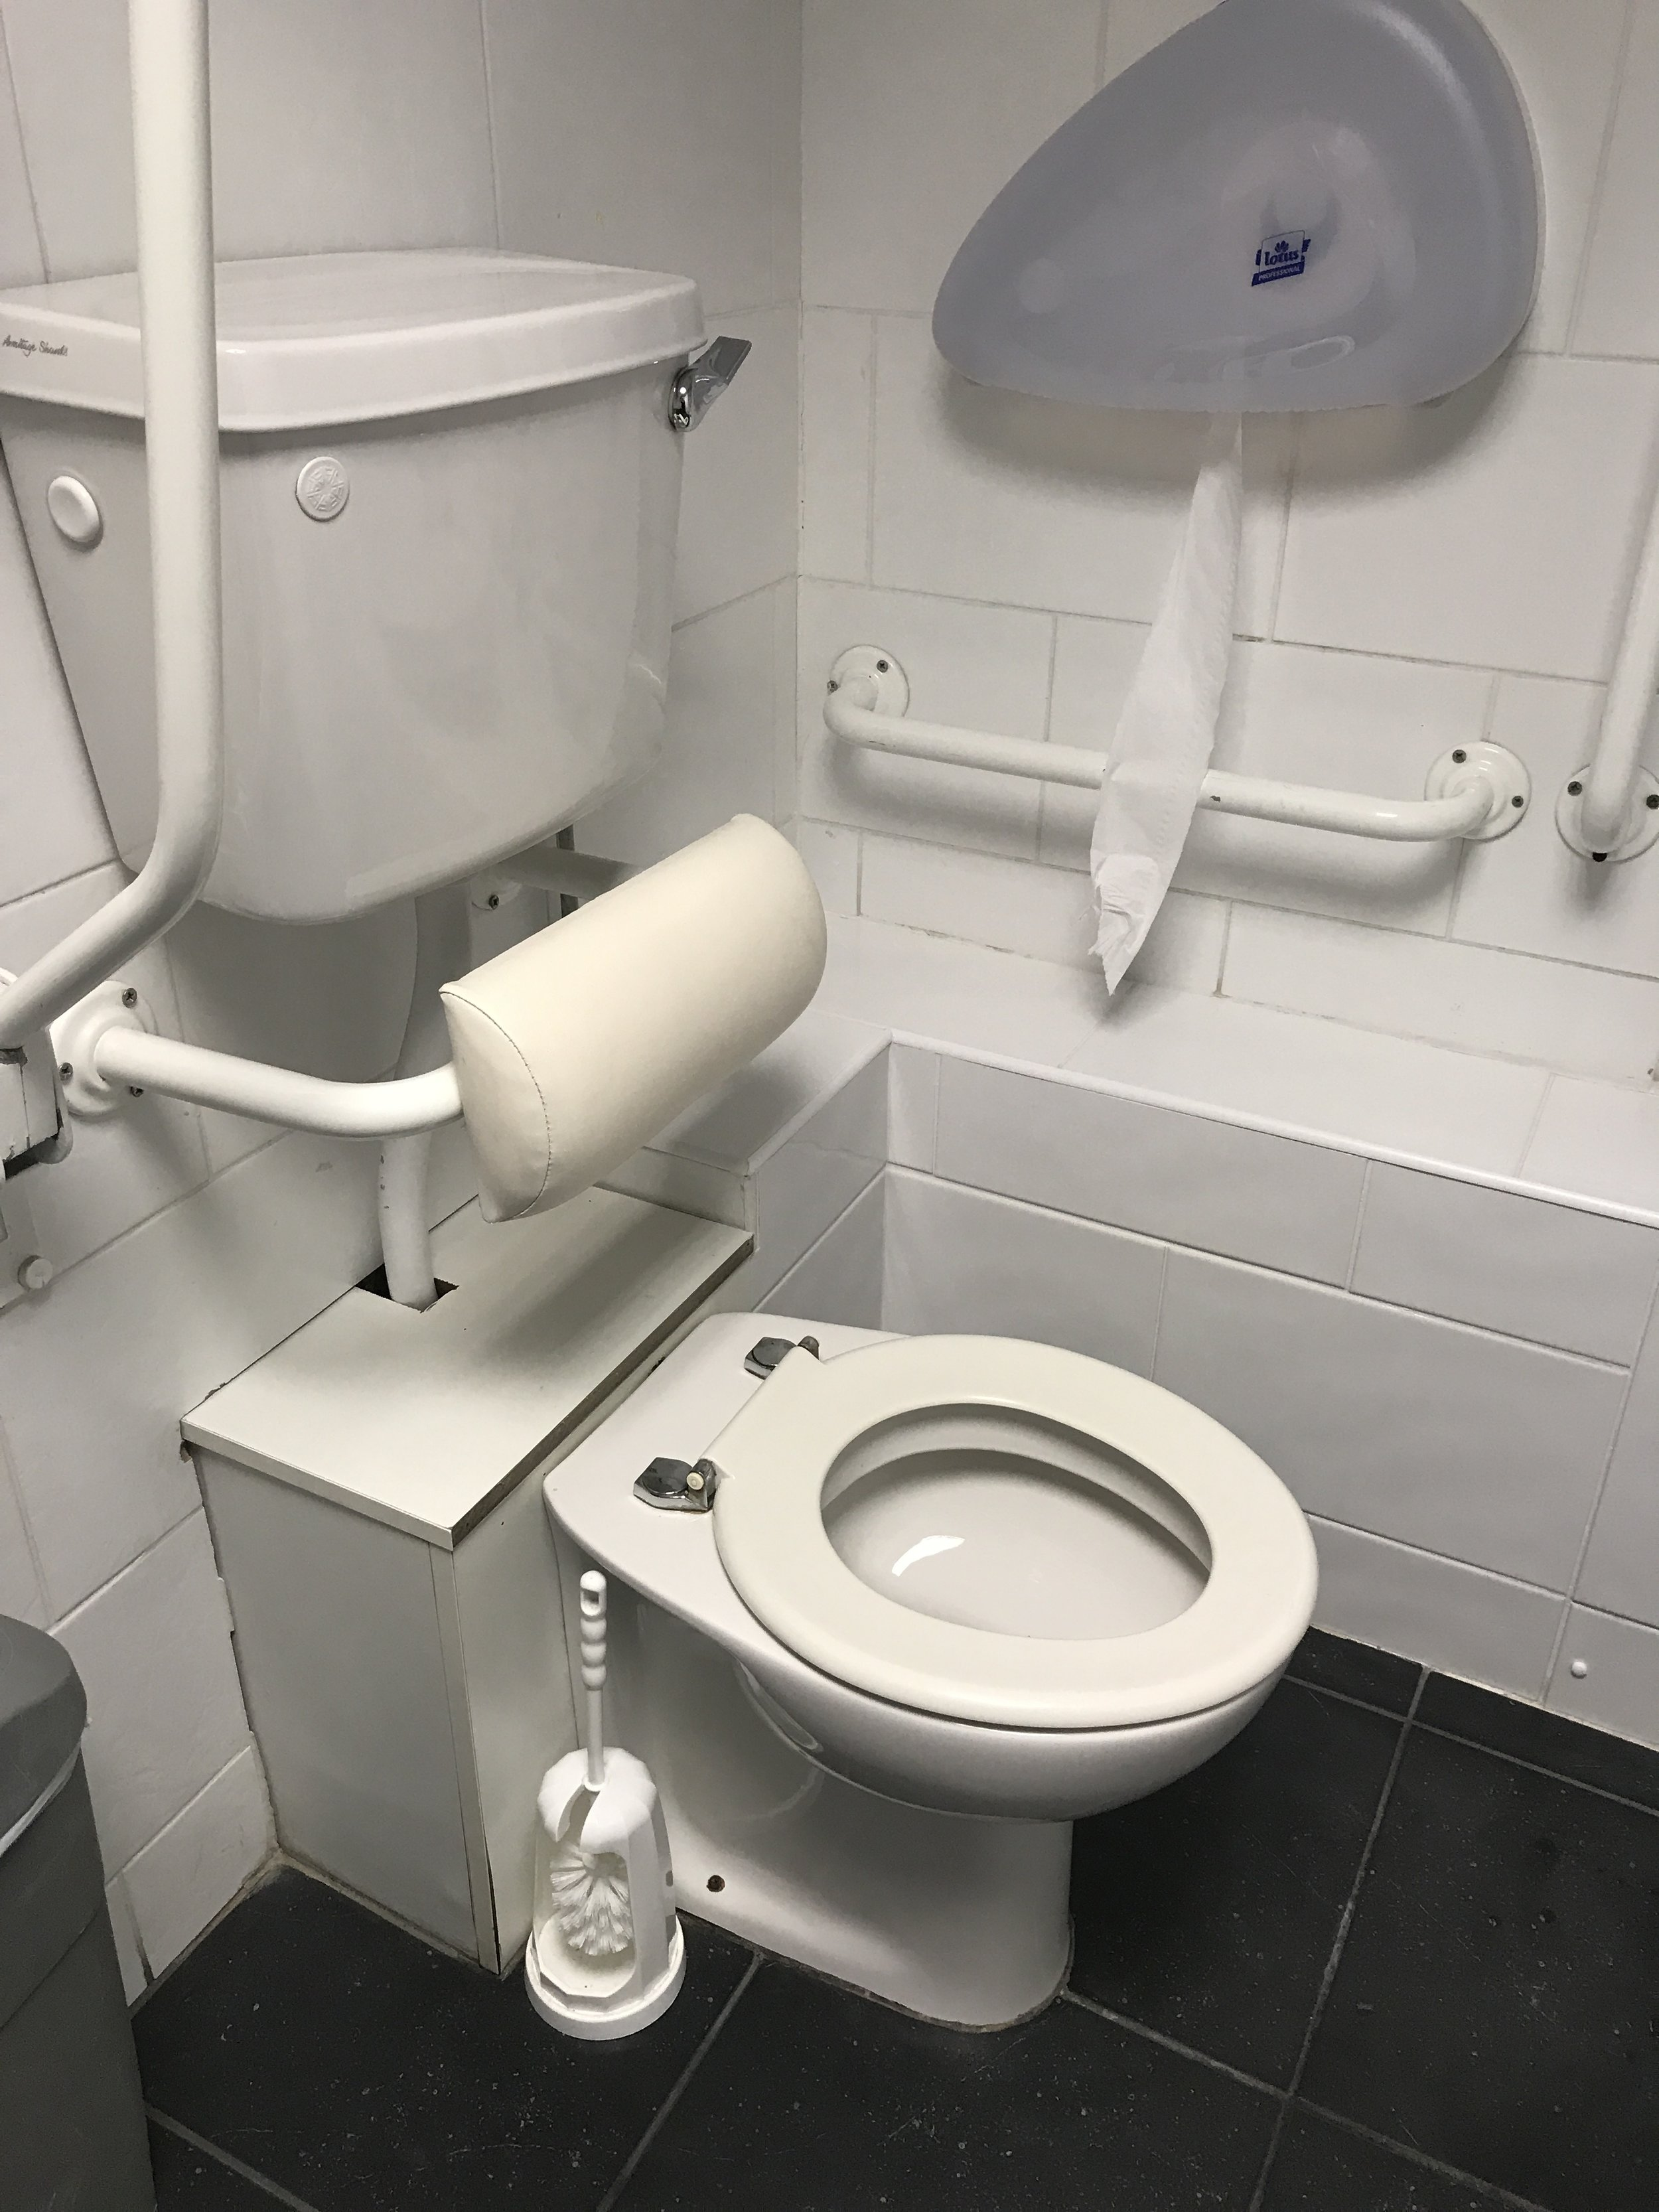 This toilet was having a serious MOMENT.